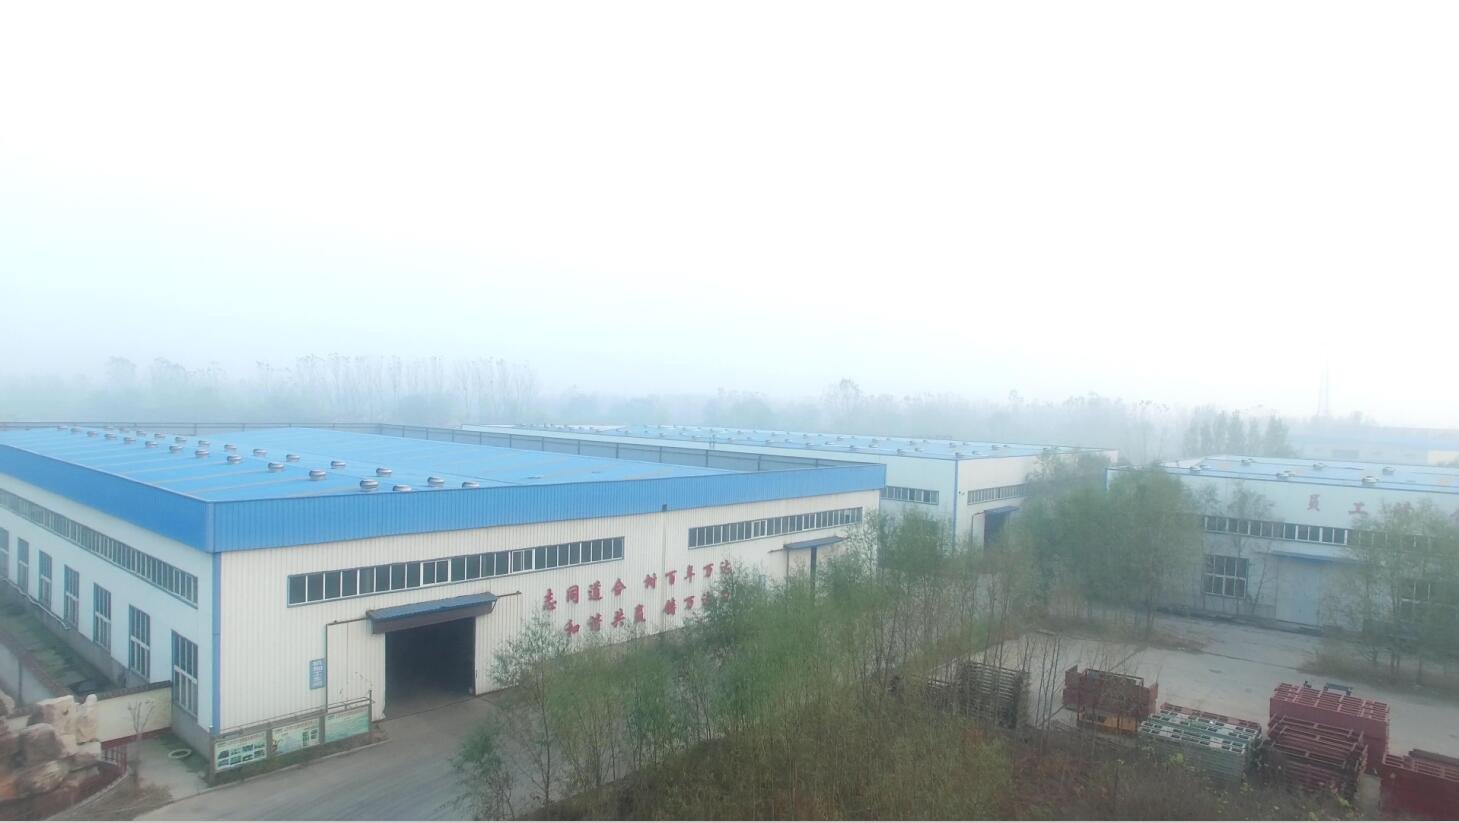 Poultry equipment factory